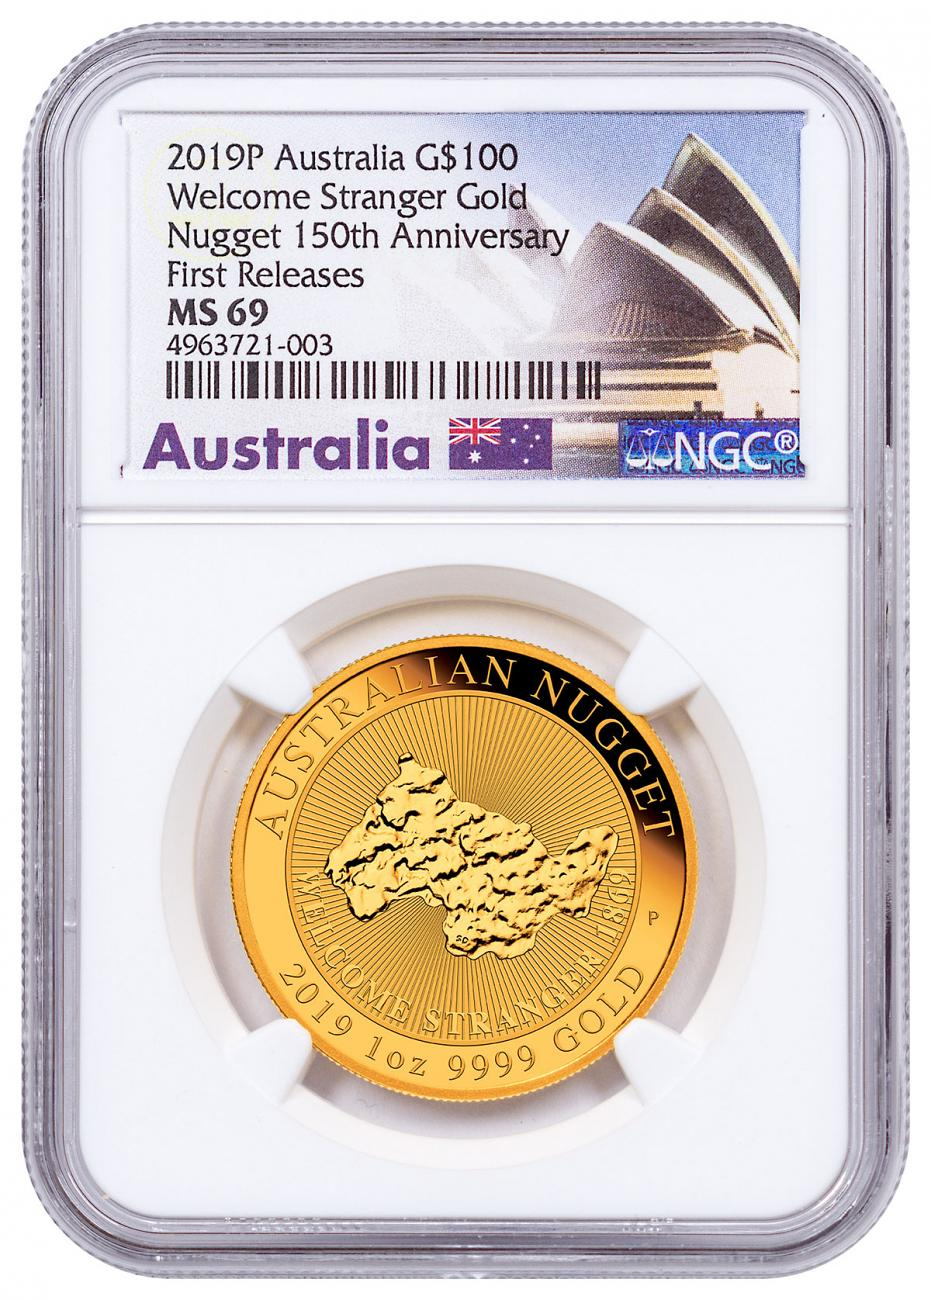 2019-P Australia Gold Nugget - Welcome Stranger $100 Coin NGC MS69 FR Opera House Label